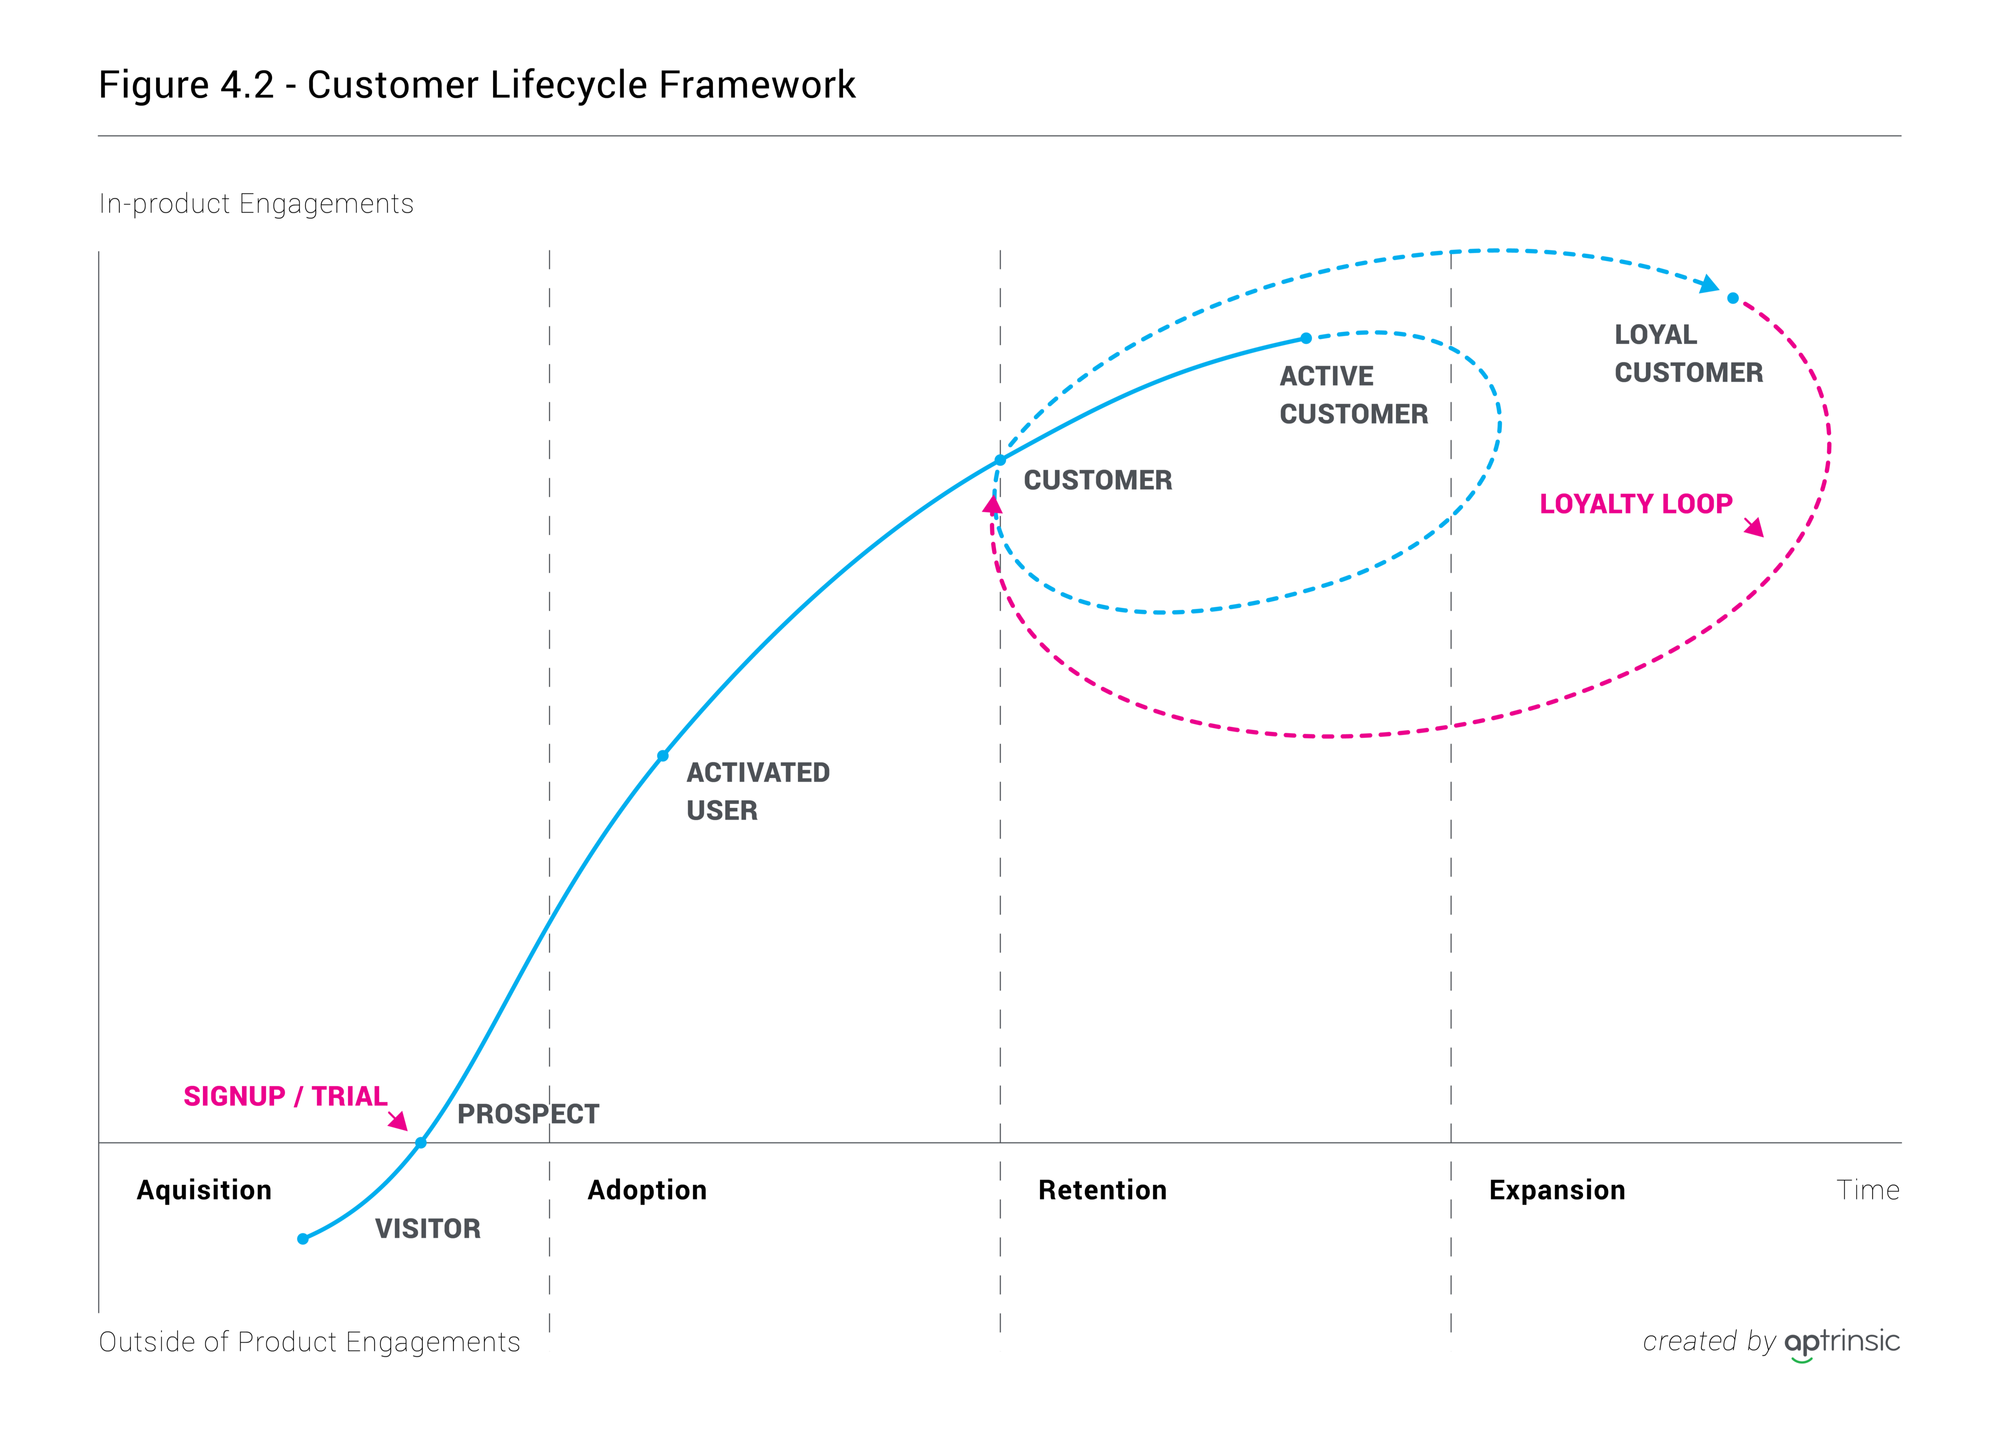 Chapter 4: Taking an Outside-In Perspective of the Customer Lifecycle